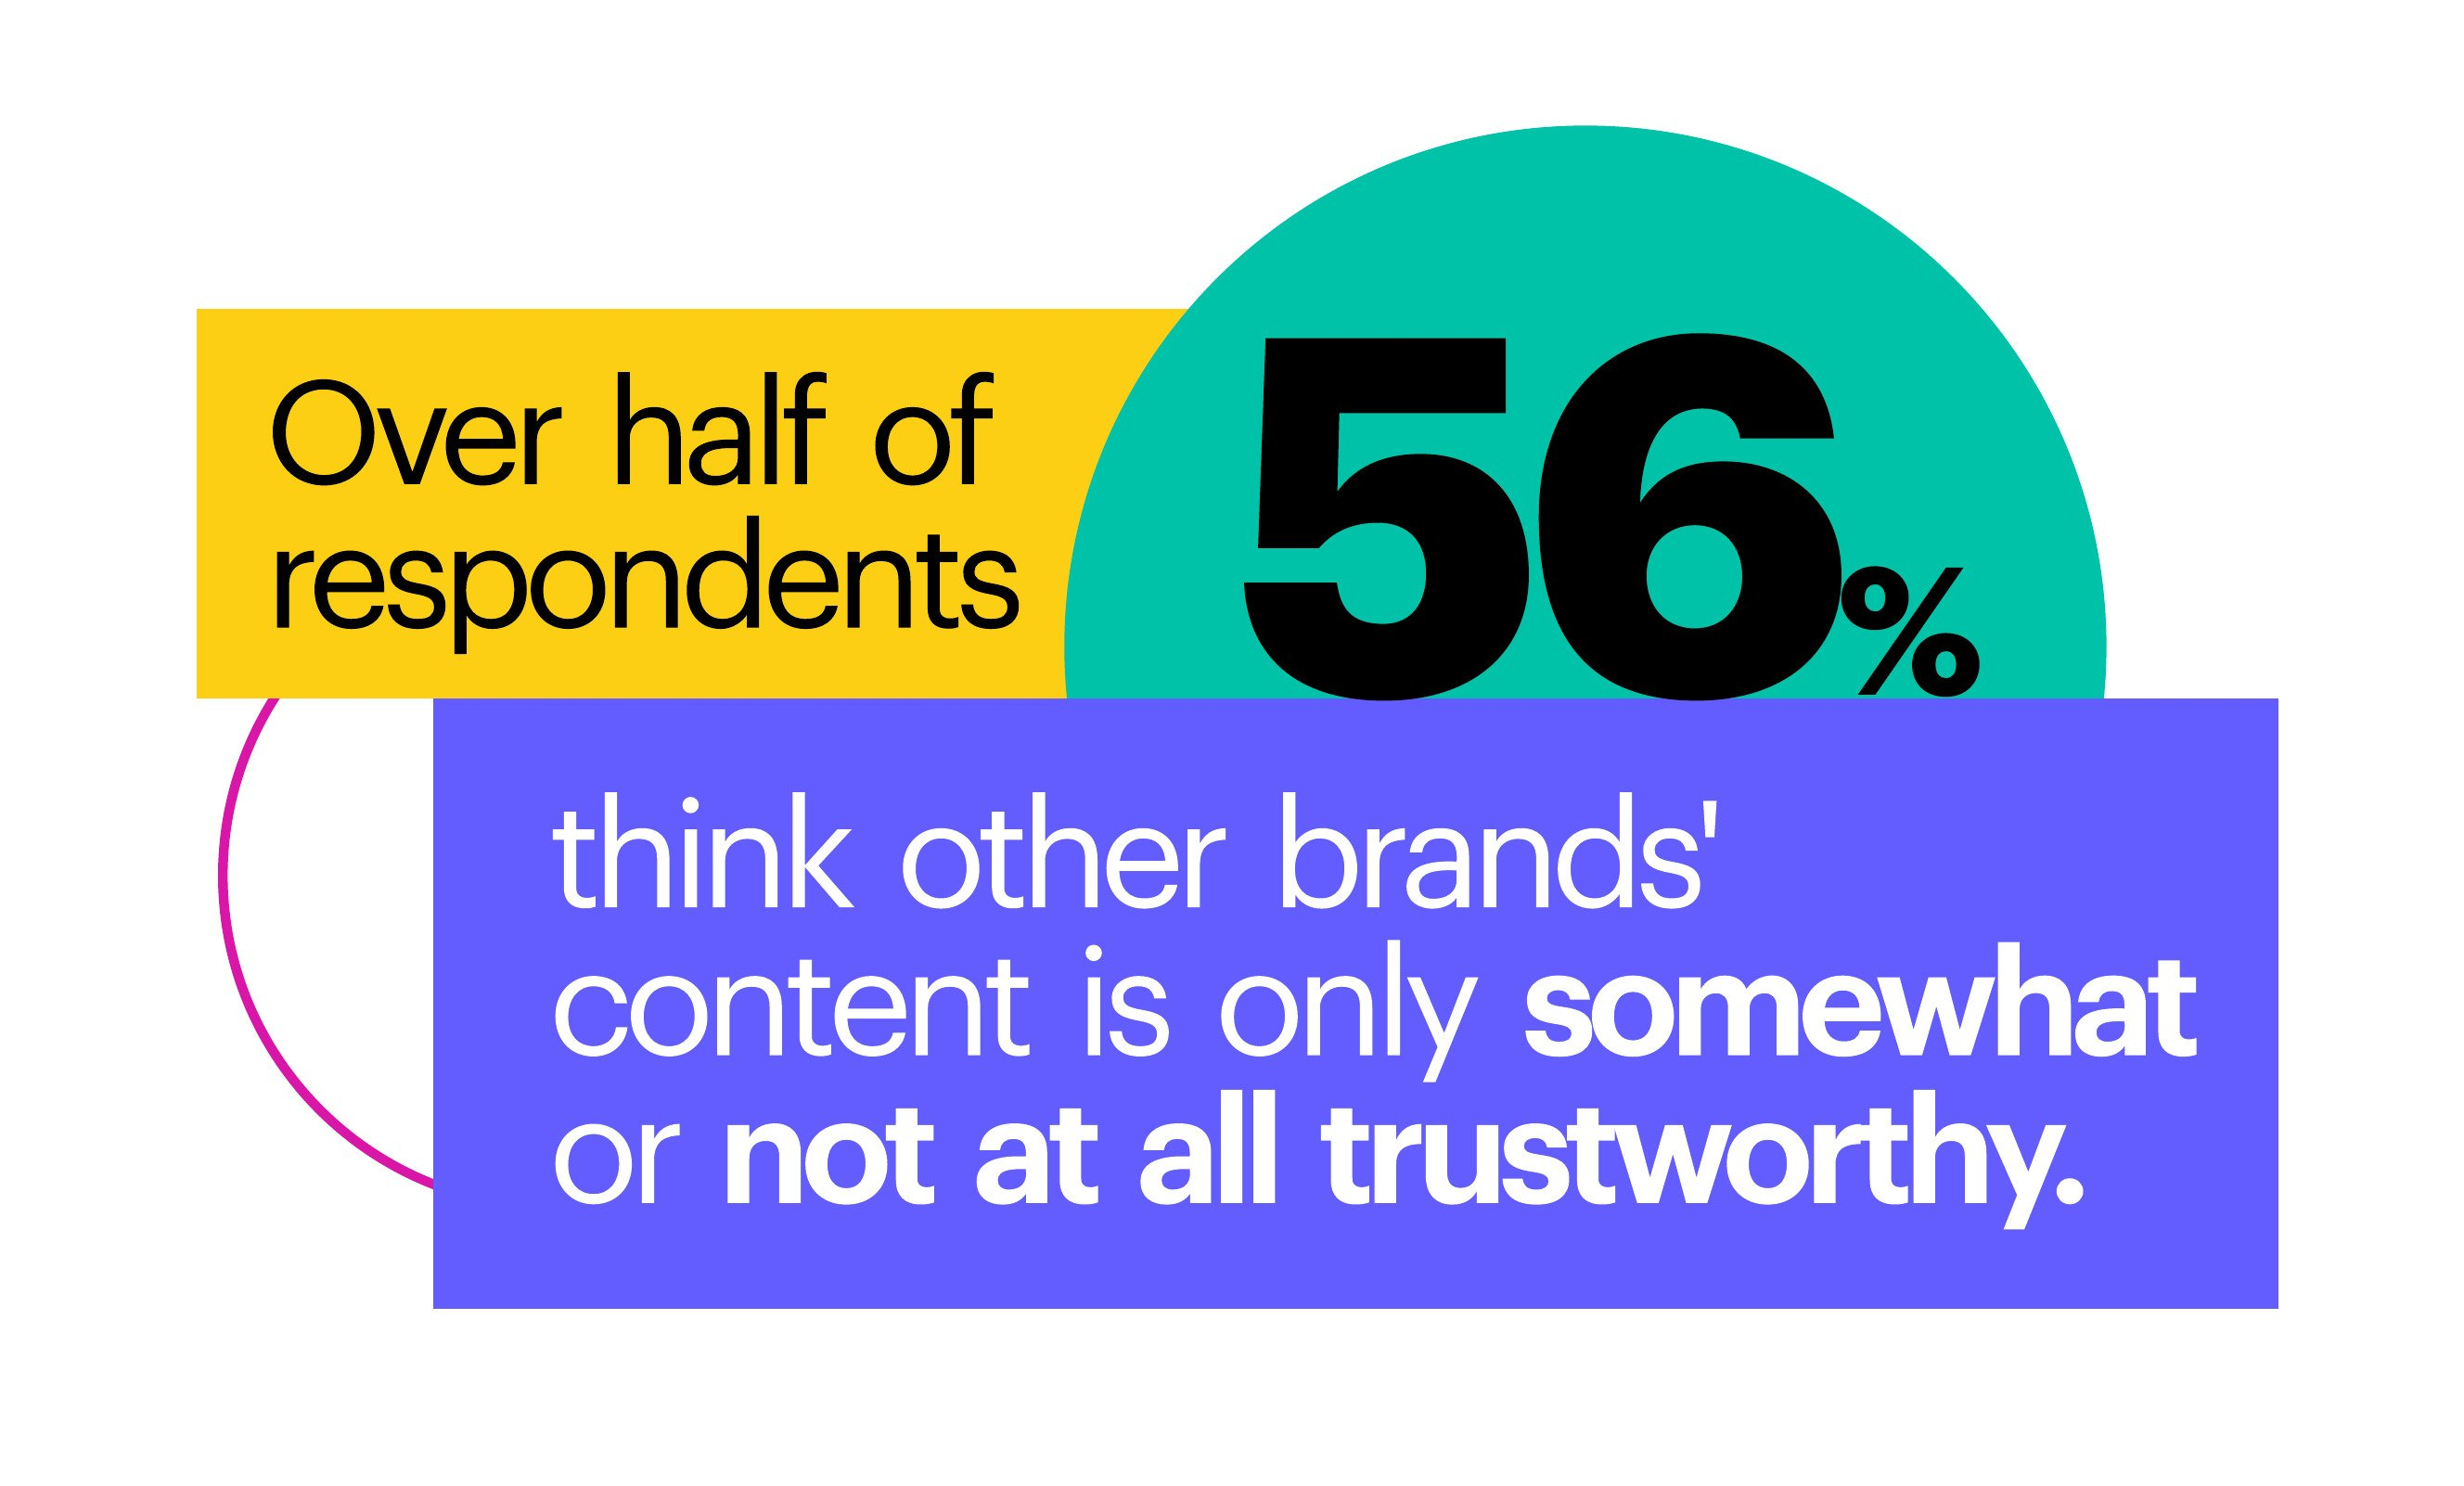 Over half of respondents (56%) think other brands' content is only somewhat or not at all trustworthy.